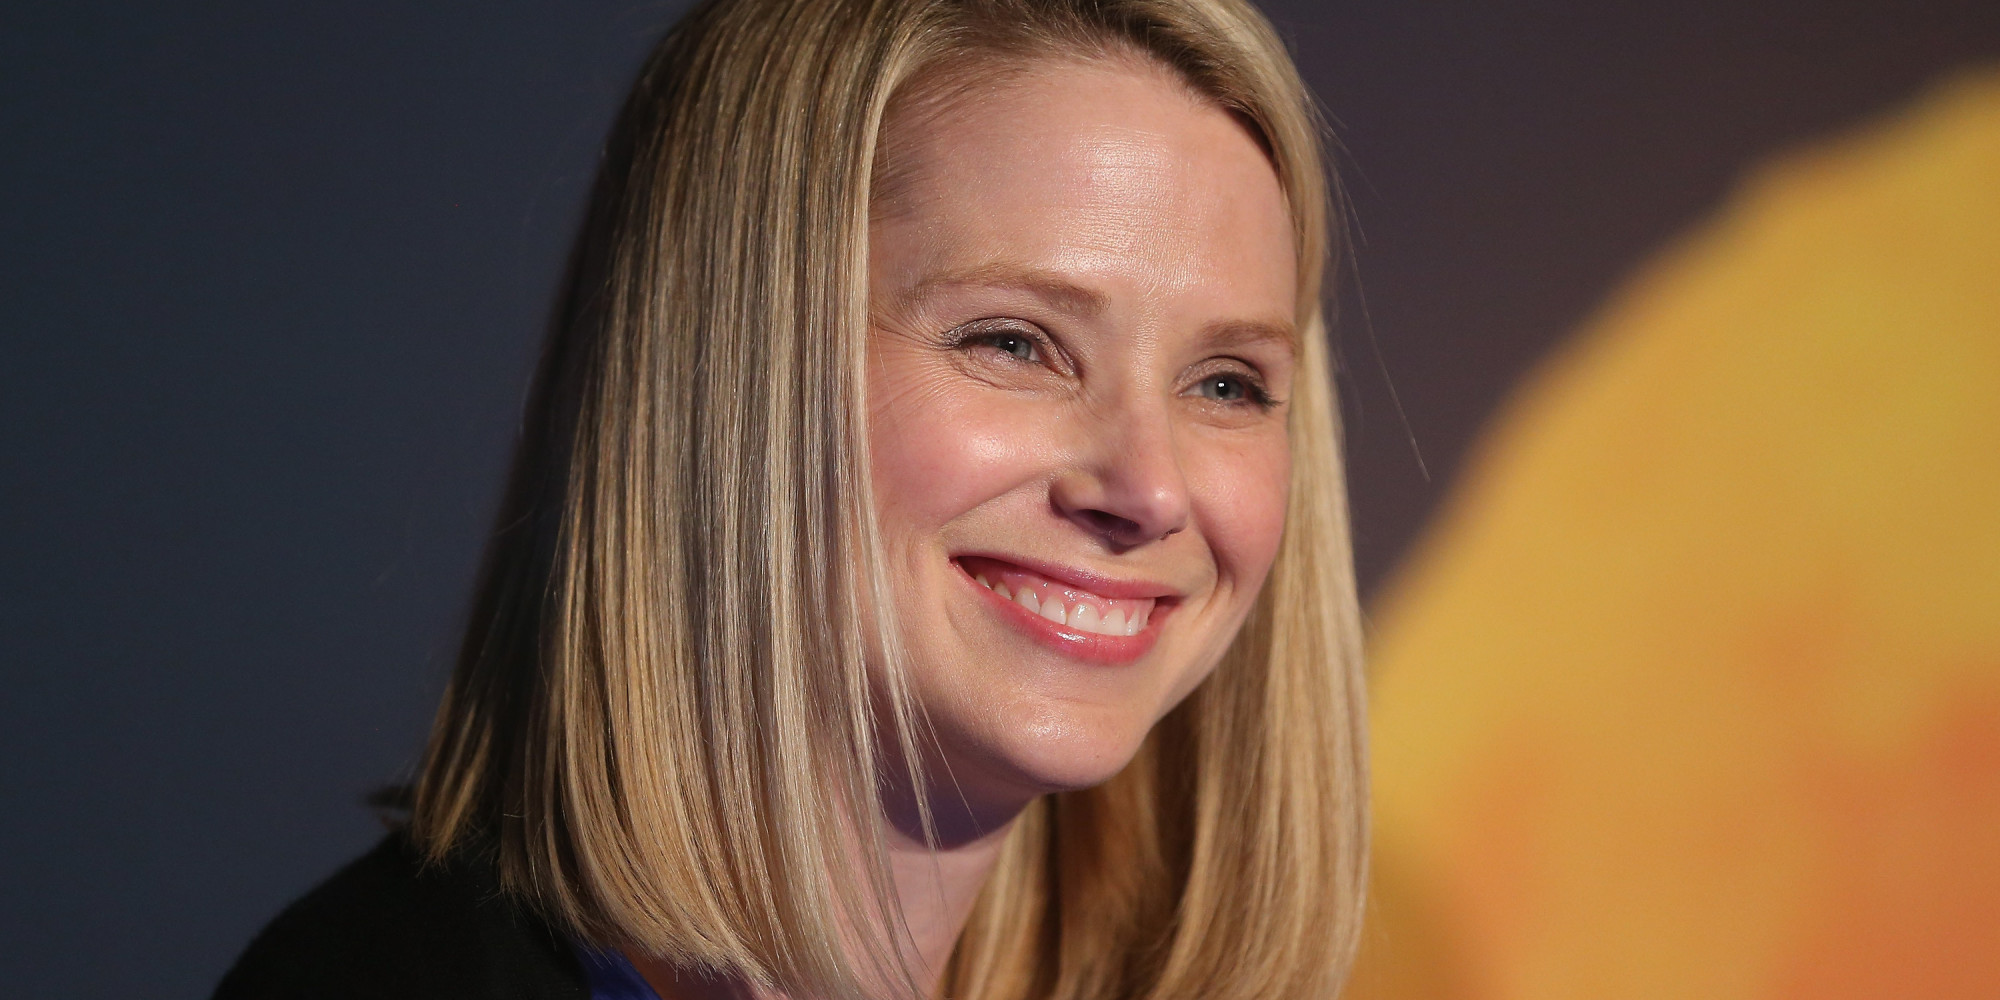 Is news of pregnant Yahoo CEO a victory for women